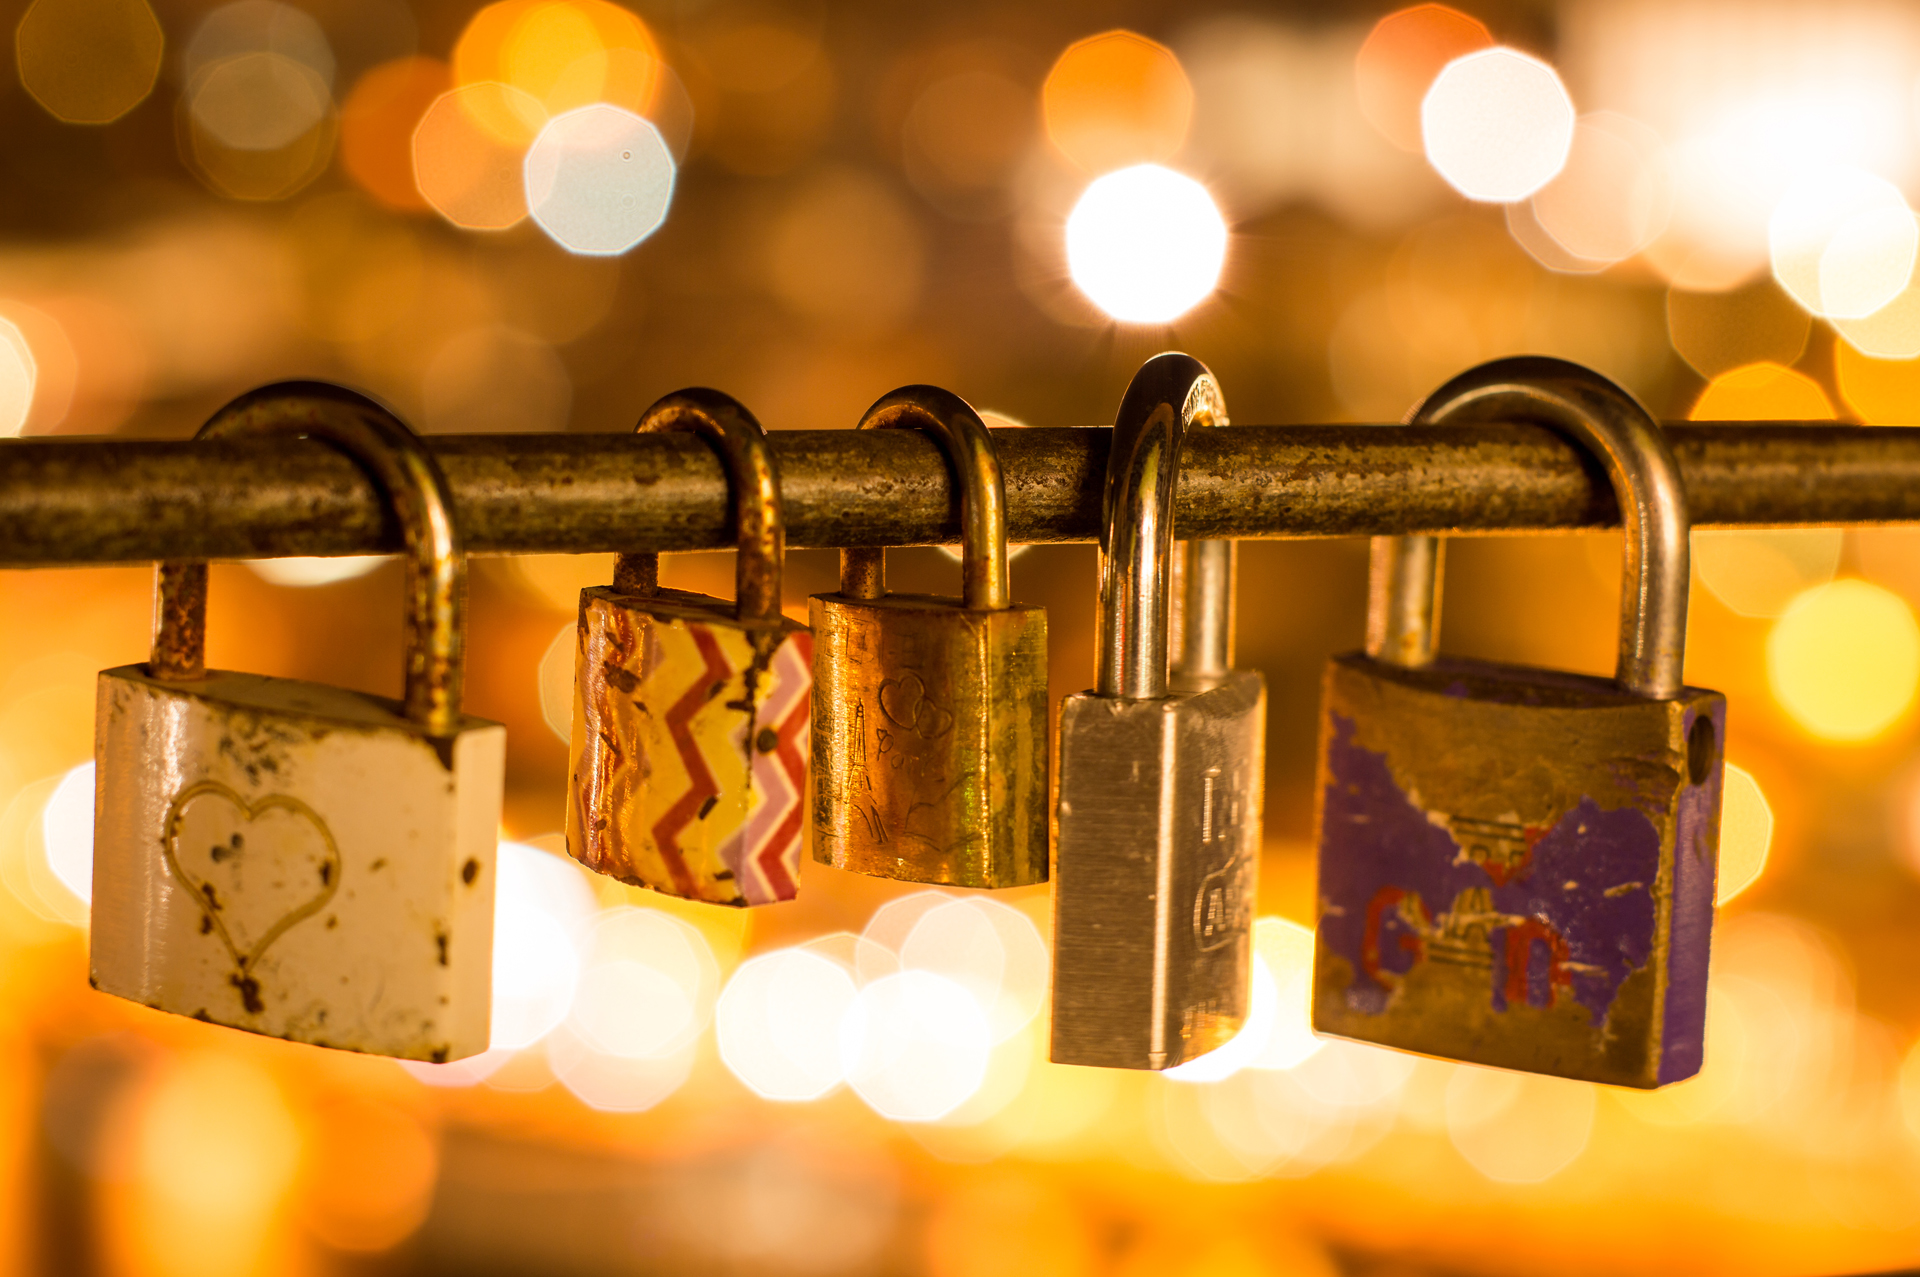 Some of the dozens of love locks on Serra do Pilar, Vila Nova de Gaia, with the Porto's city lights on the background